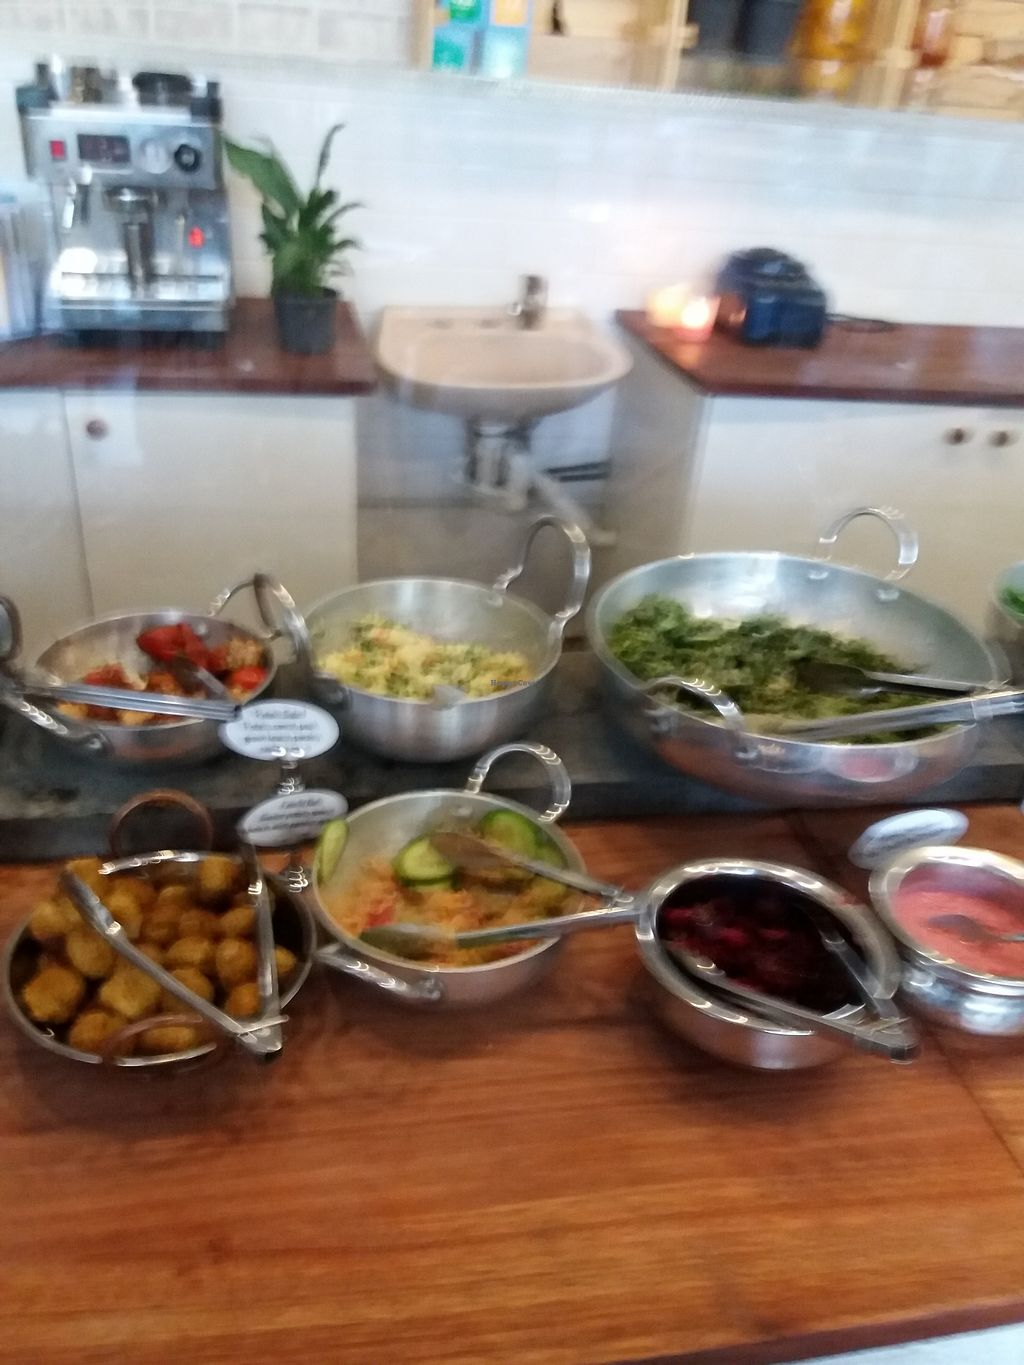 """Photo of OM Vegan Kitchen  by <a href=""""/members/profile/veganvirtues"""">veganvirtues</a> <br/>Daily buffet <br/> July 21, 2017  - <a href='/contact/abuse/image/80628/282710'>Report</a>"""